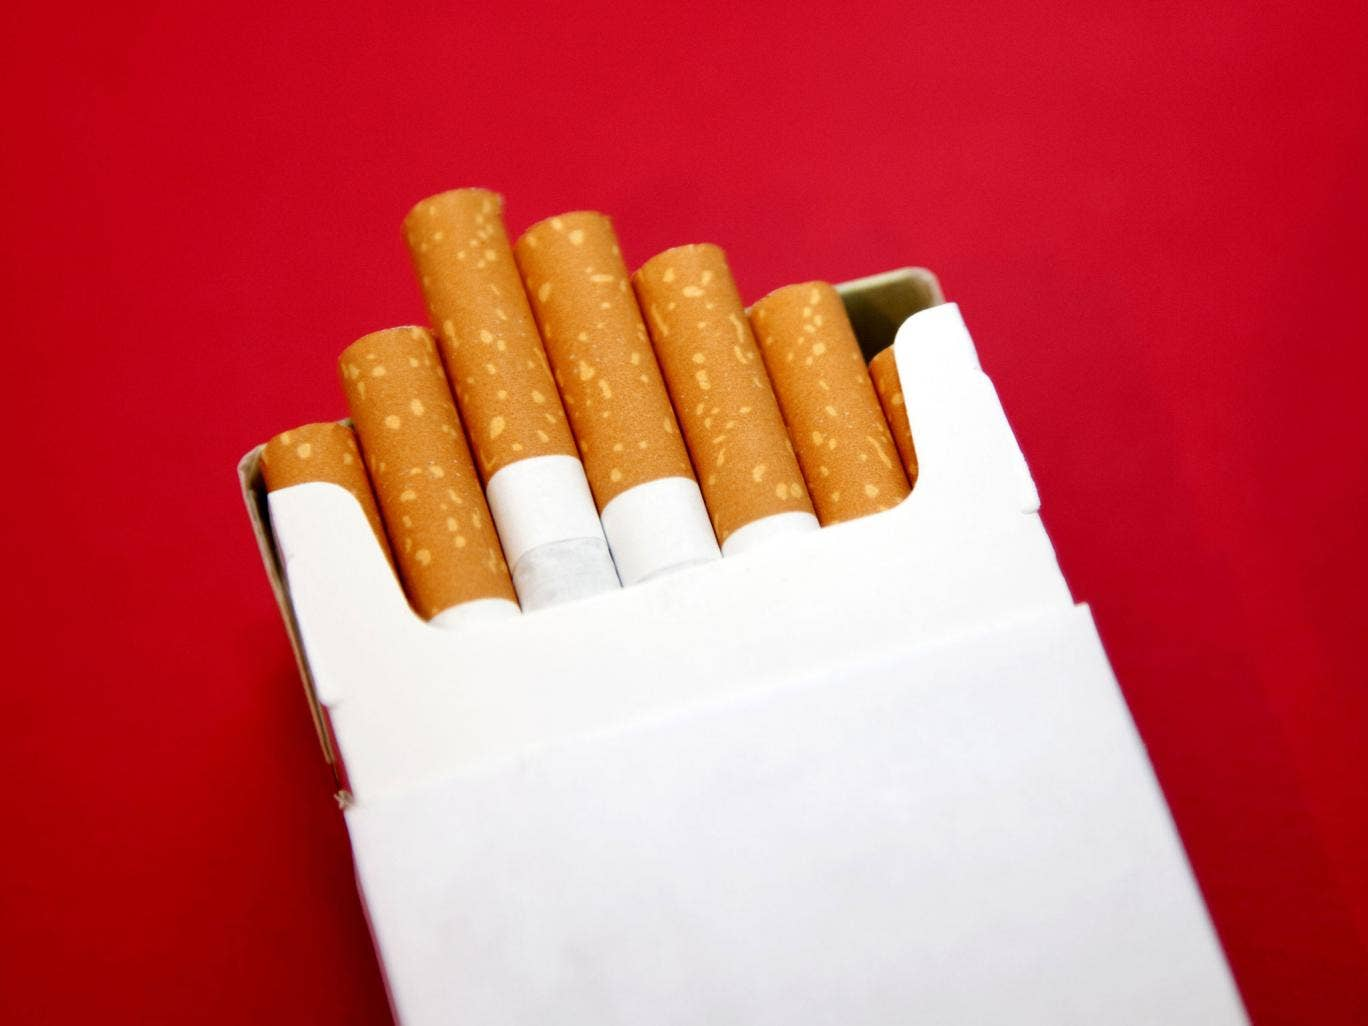 Public Health England say plain packaging for cigarettes is the right policy to adopt